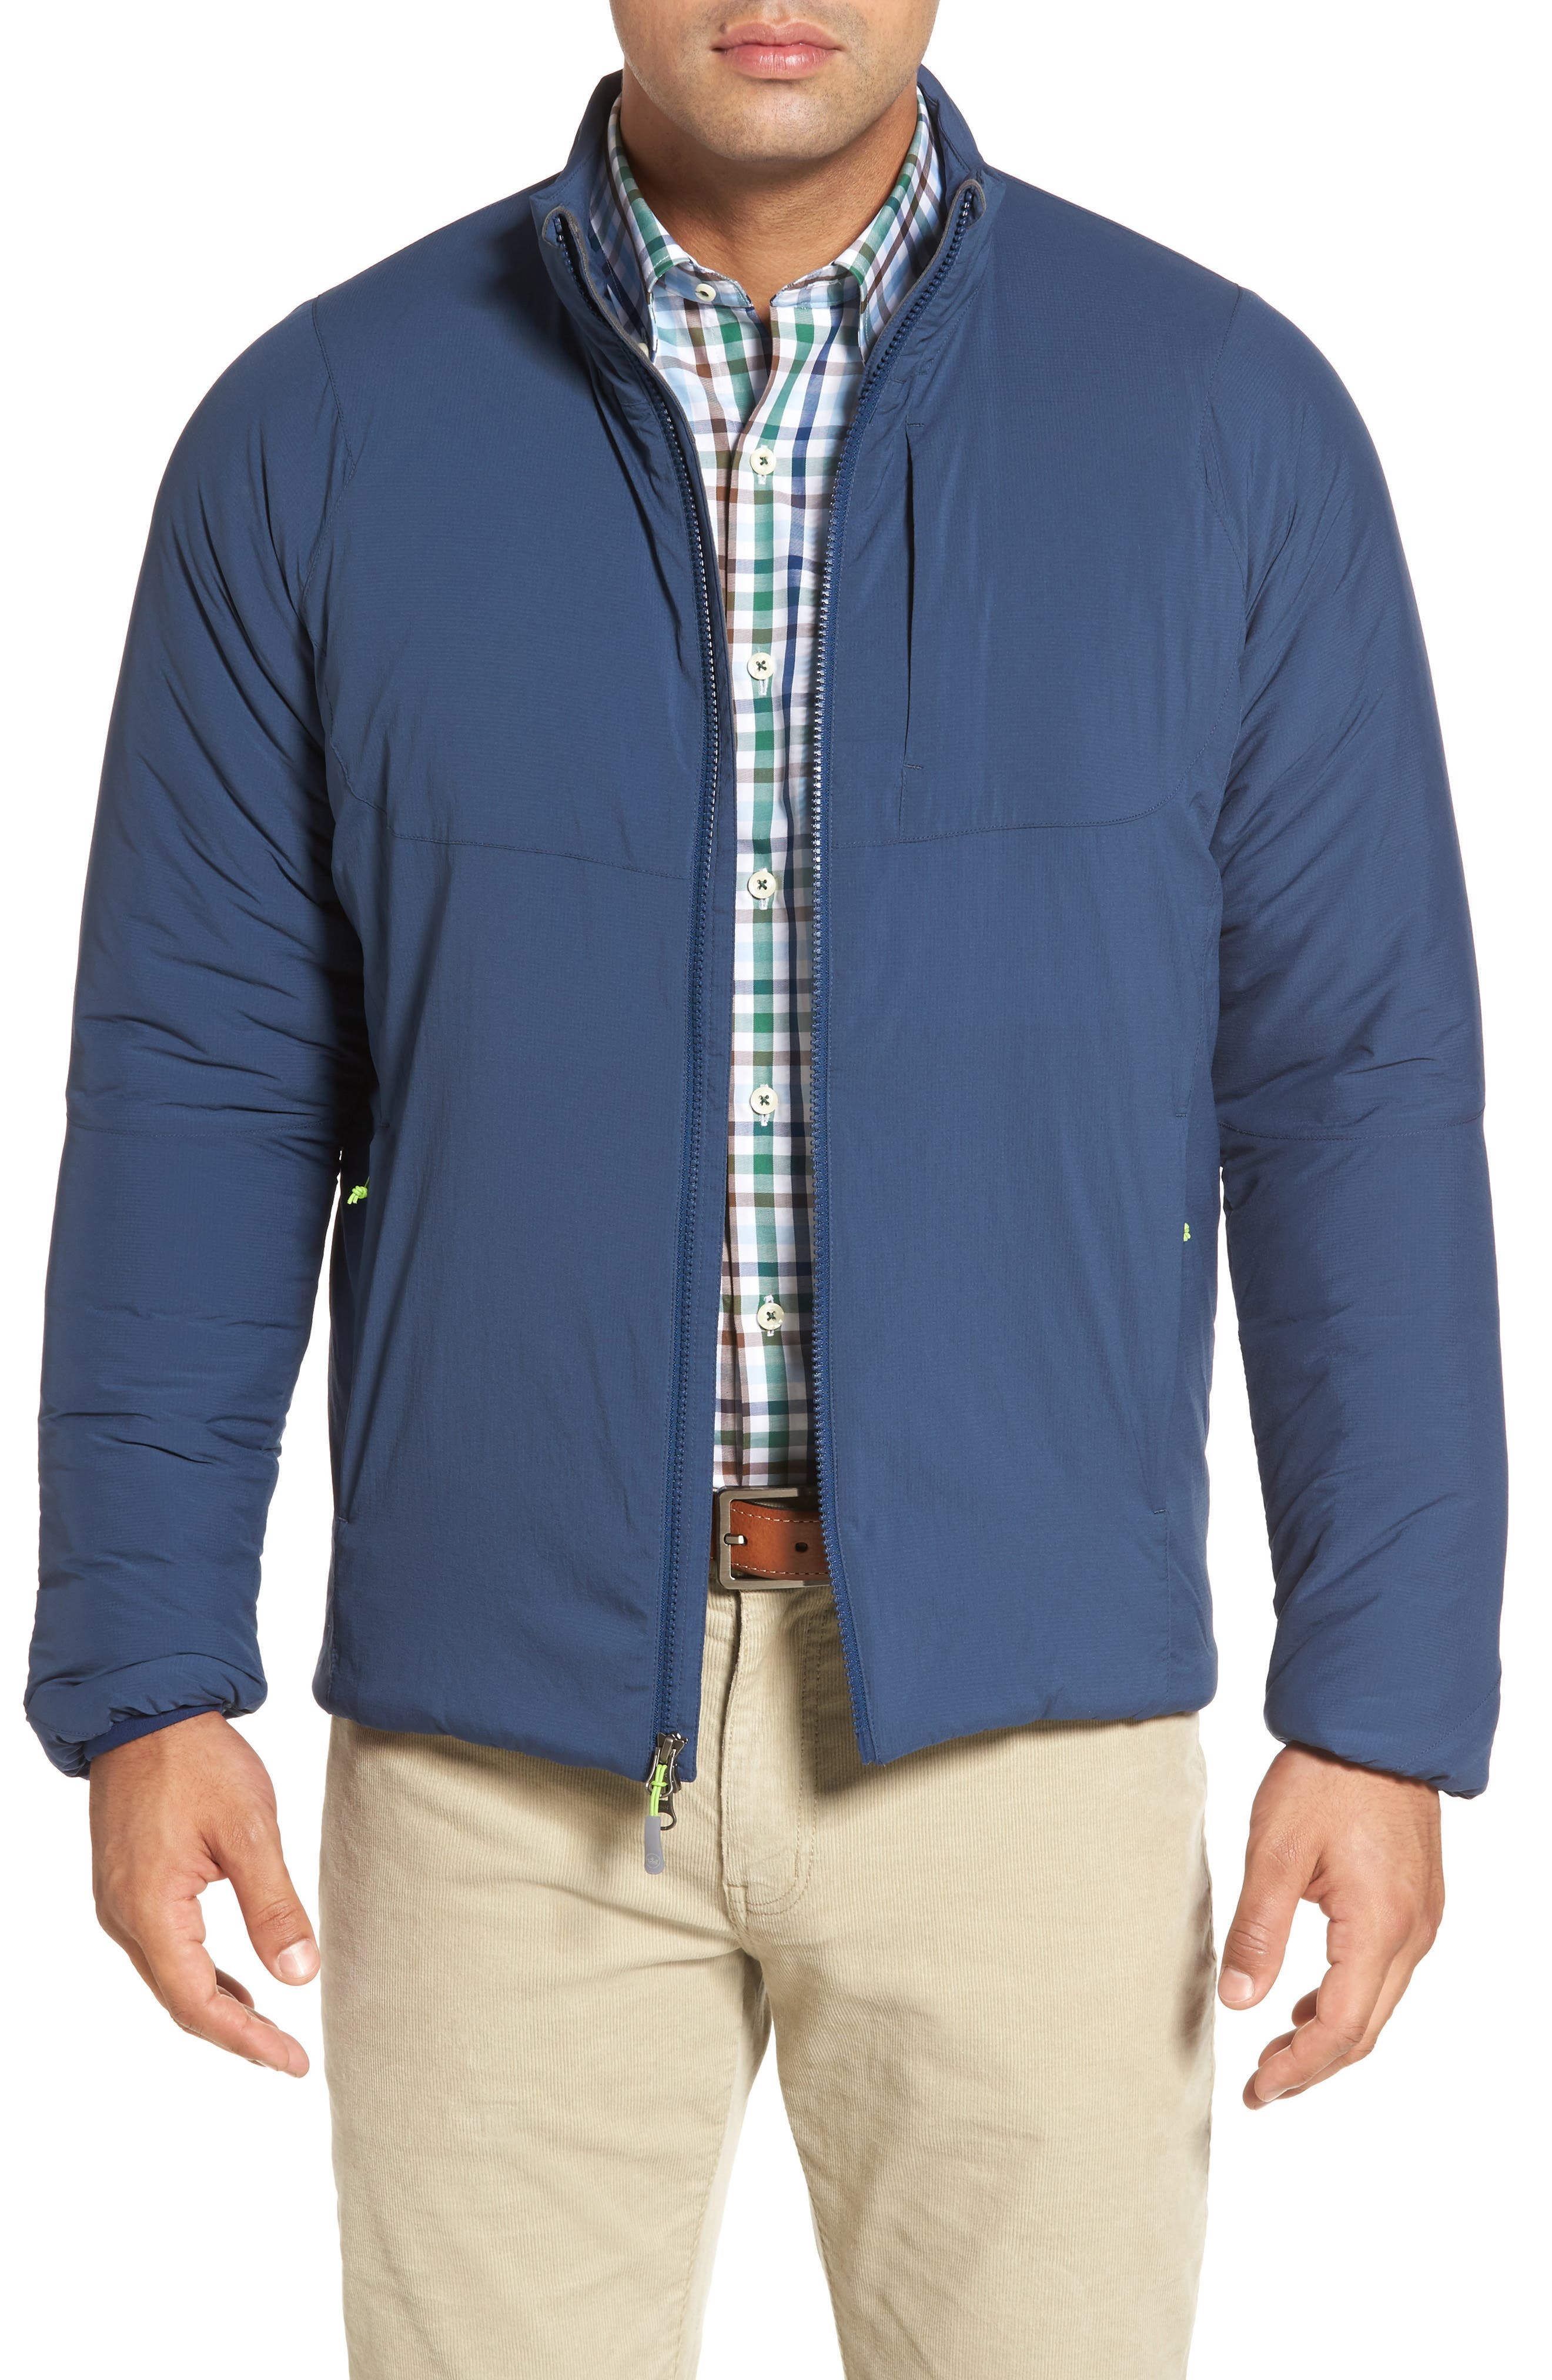 Peter Millar Bozeman Stretch Puffer Jacket